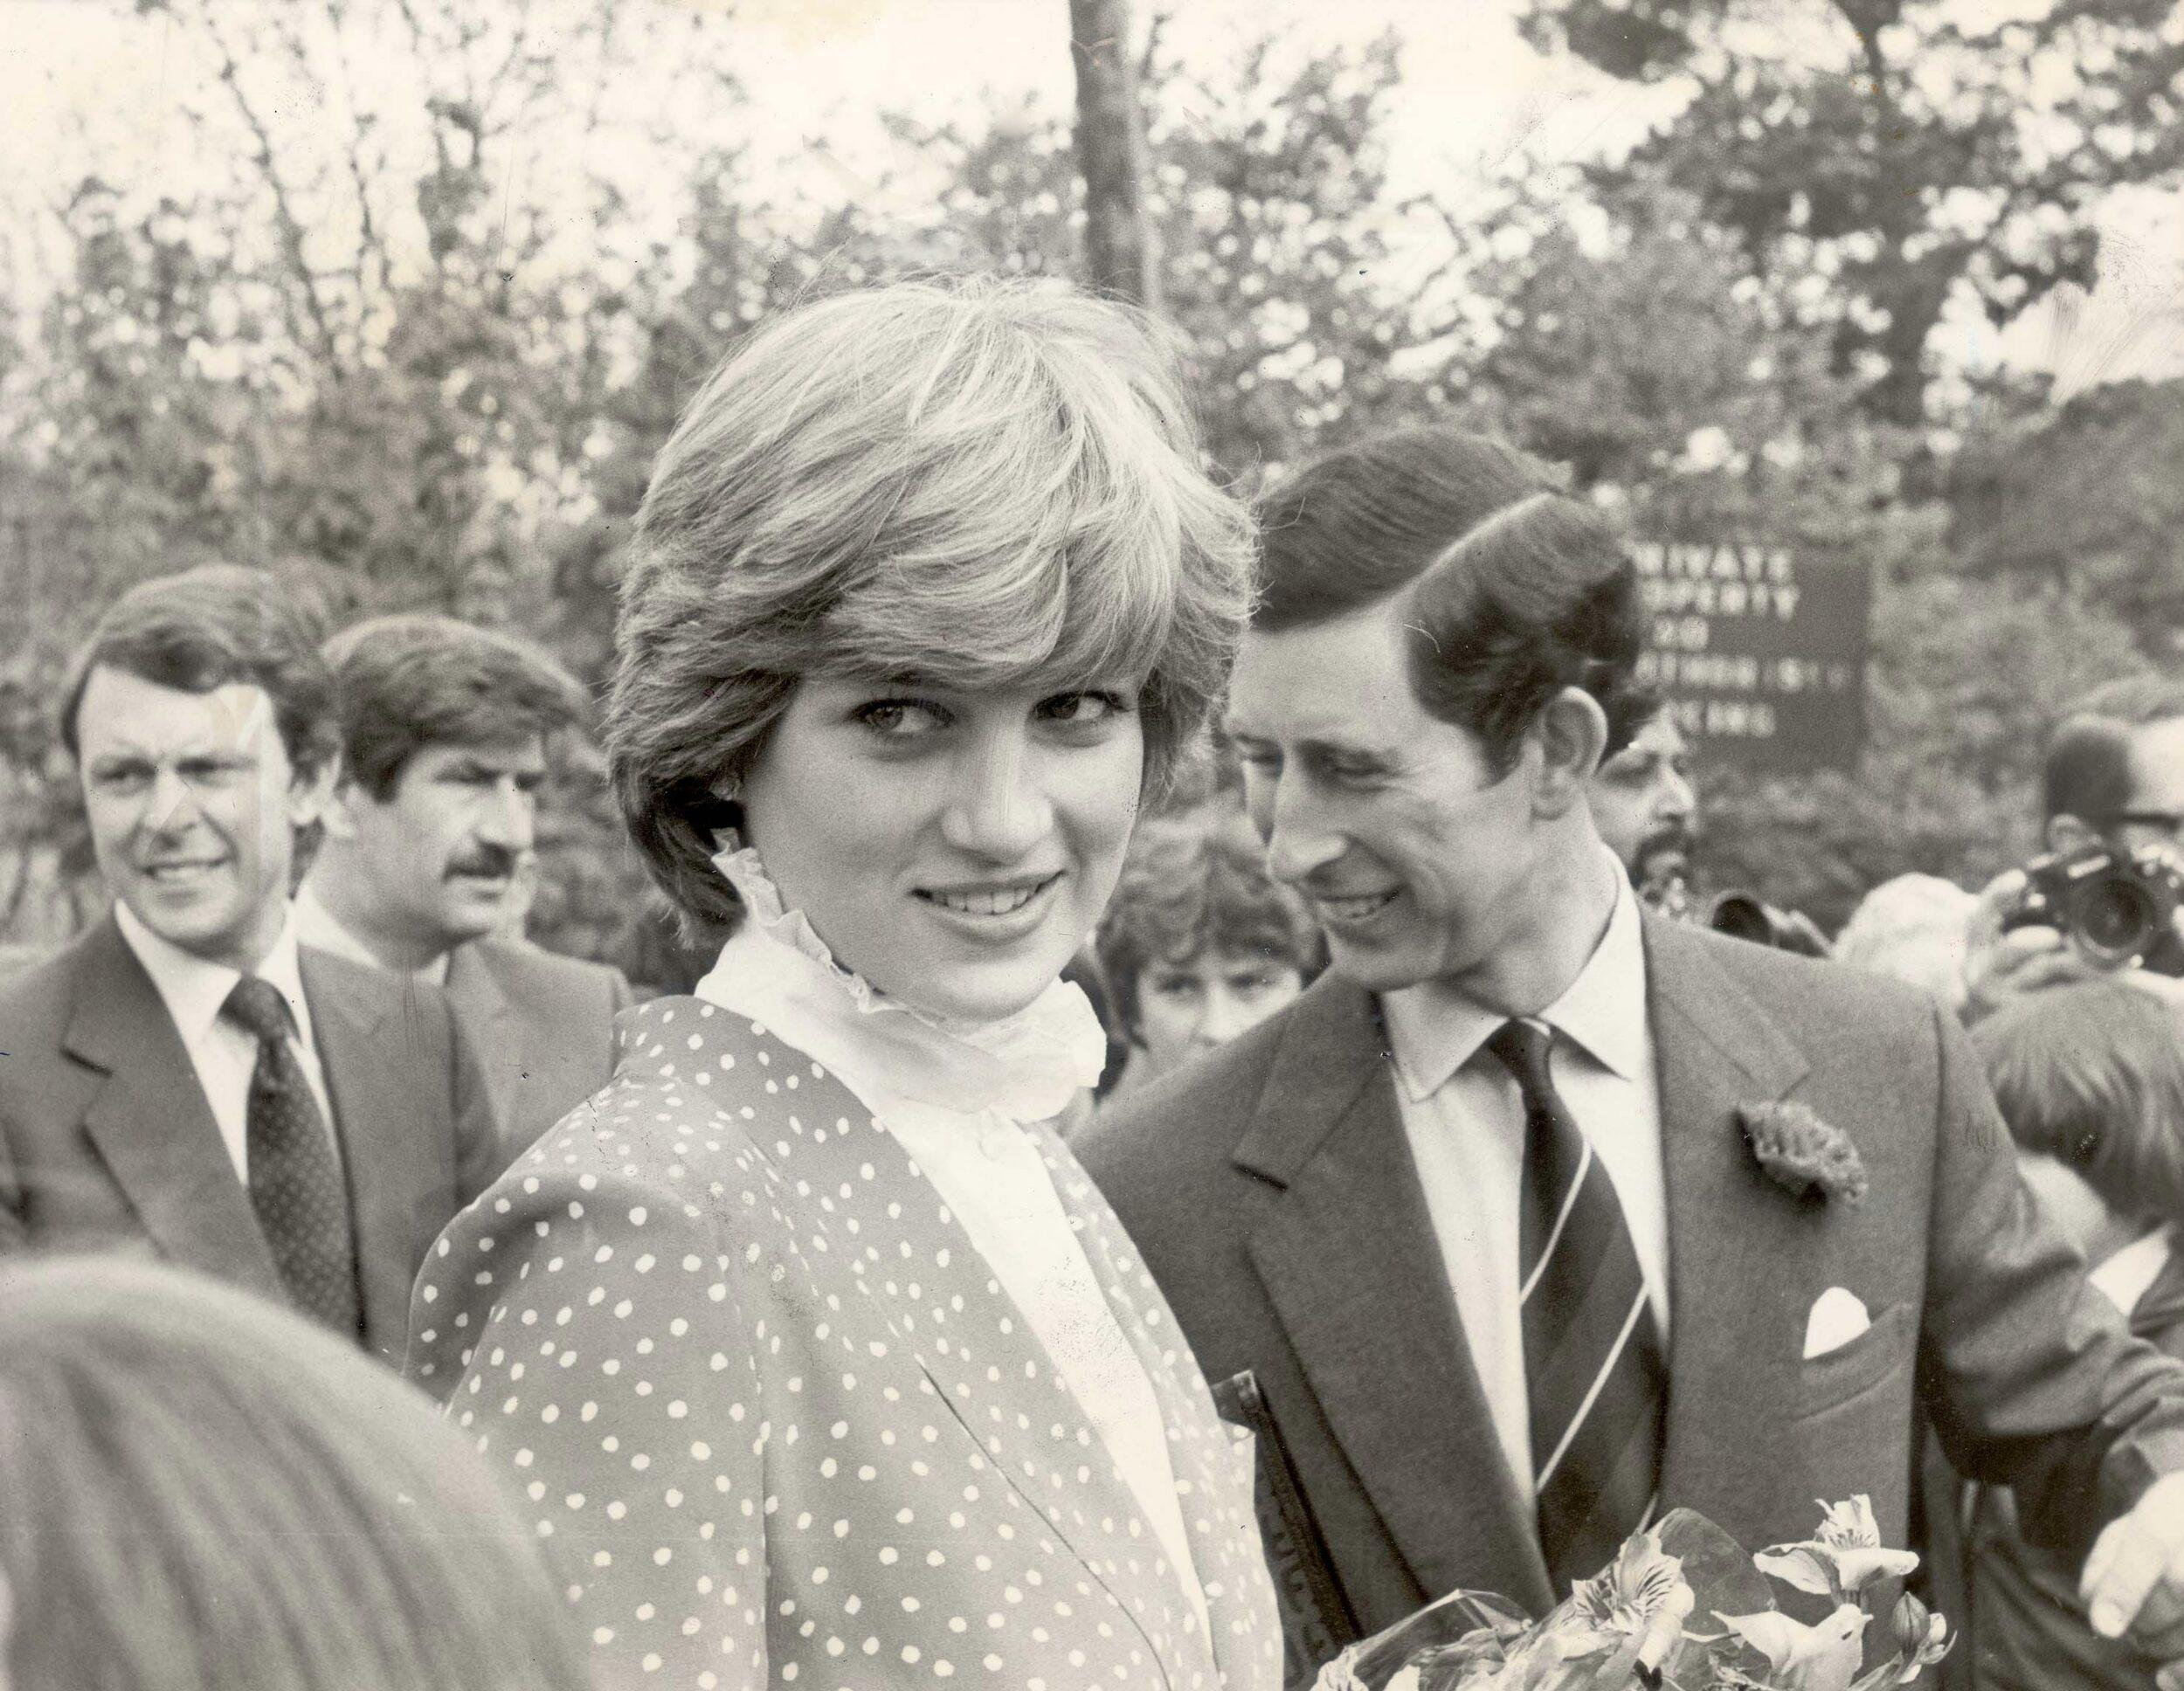 Charles and Diana as newlyweds.